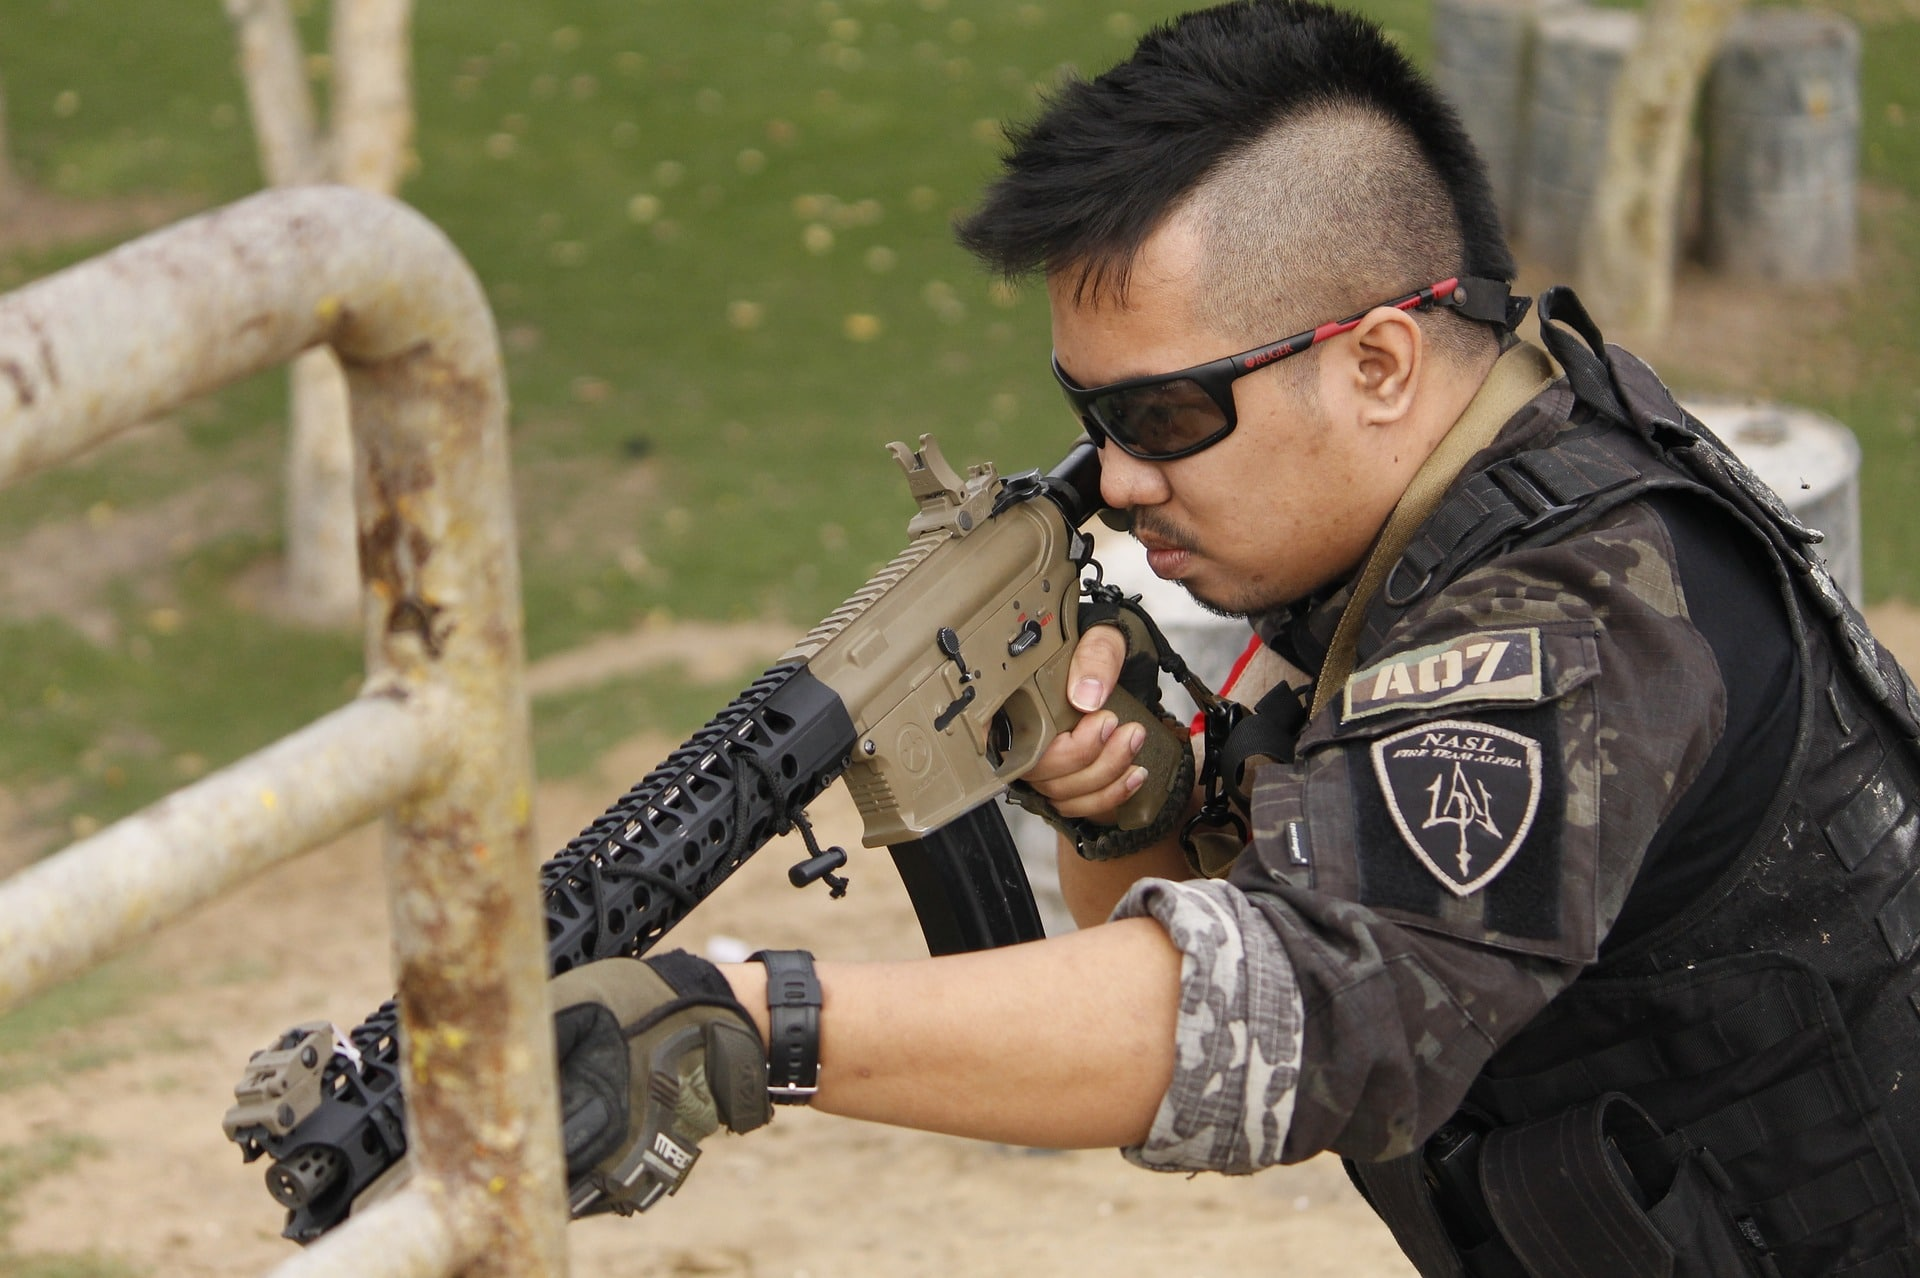 12 Airsoft Tactics for Beginners Guide